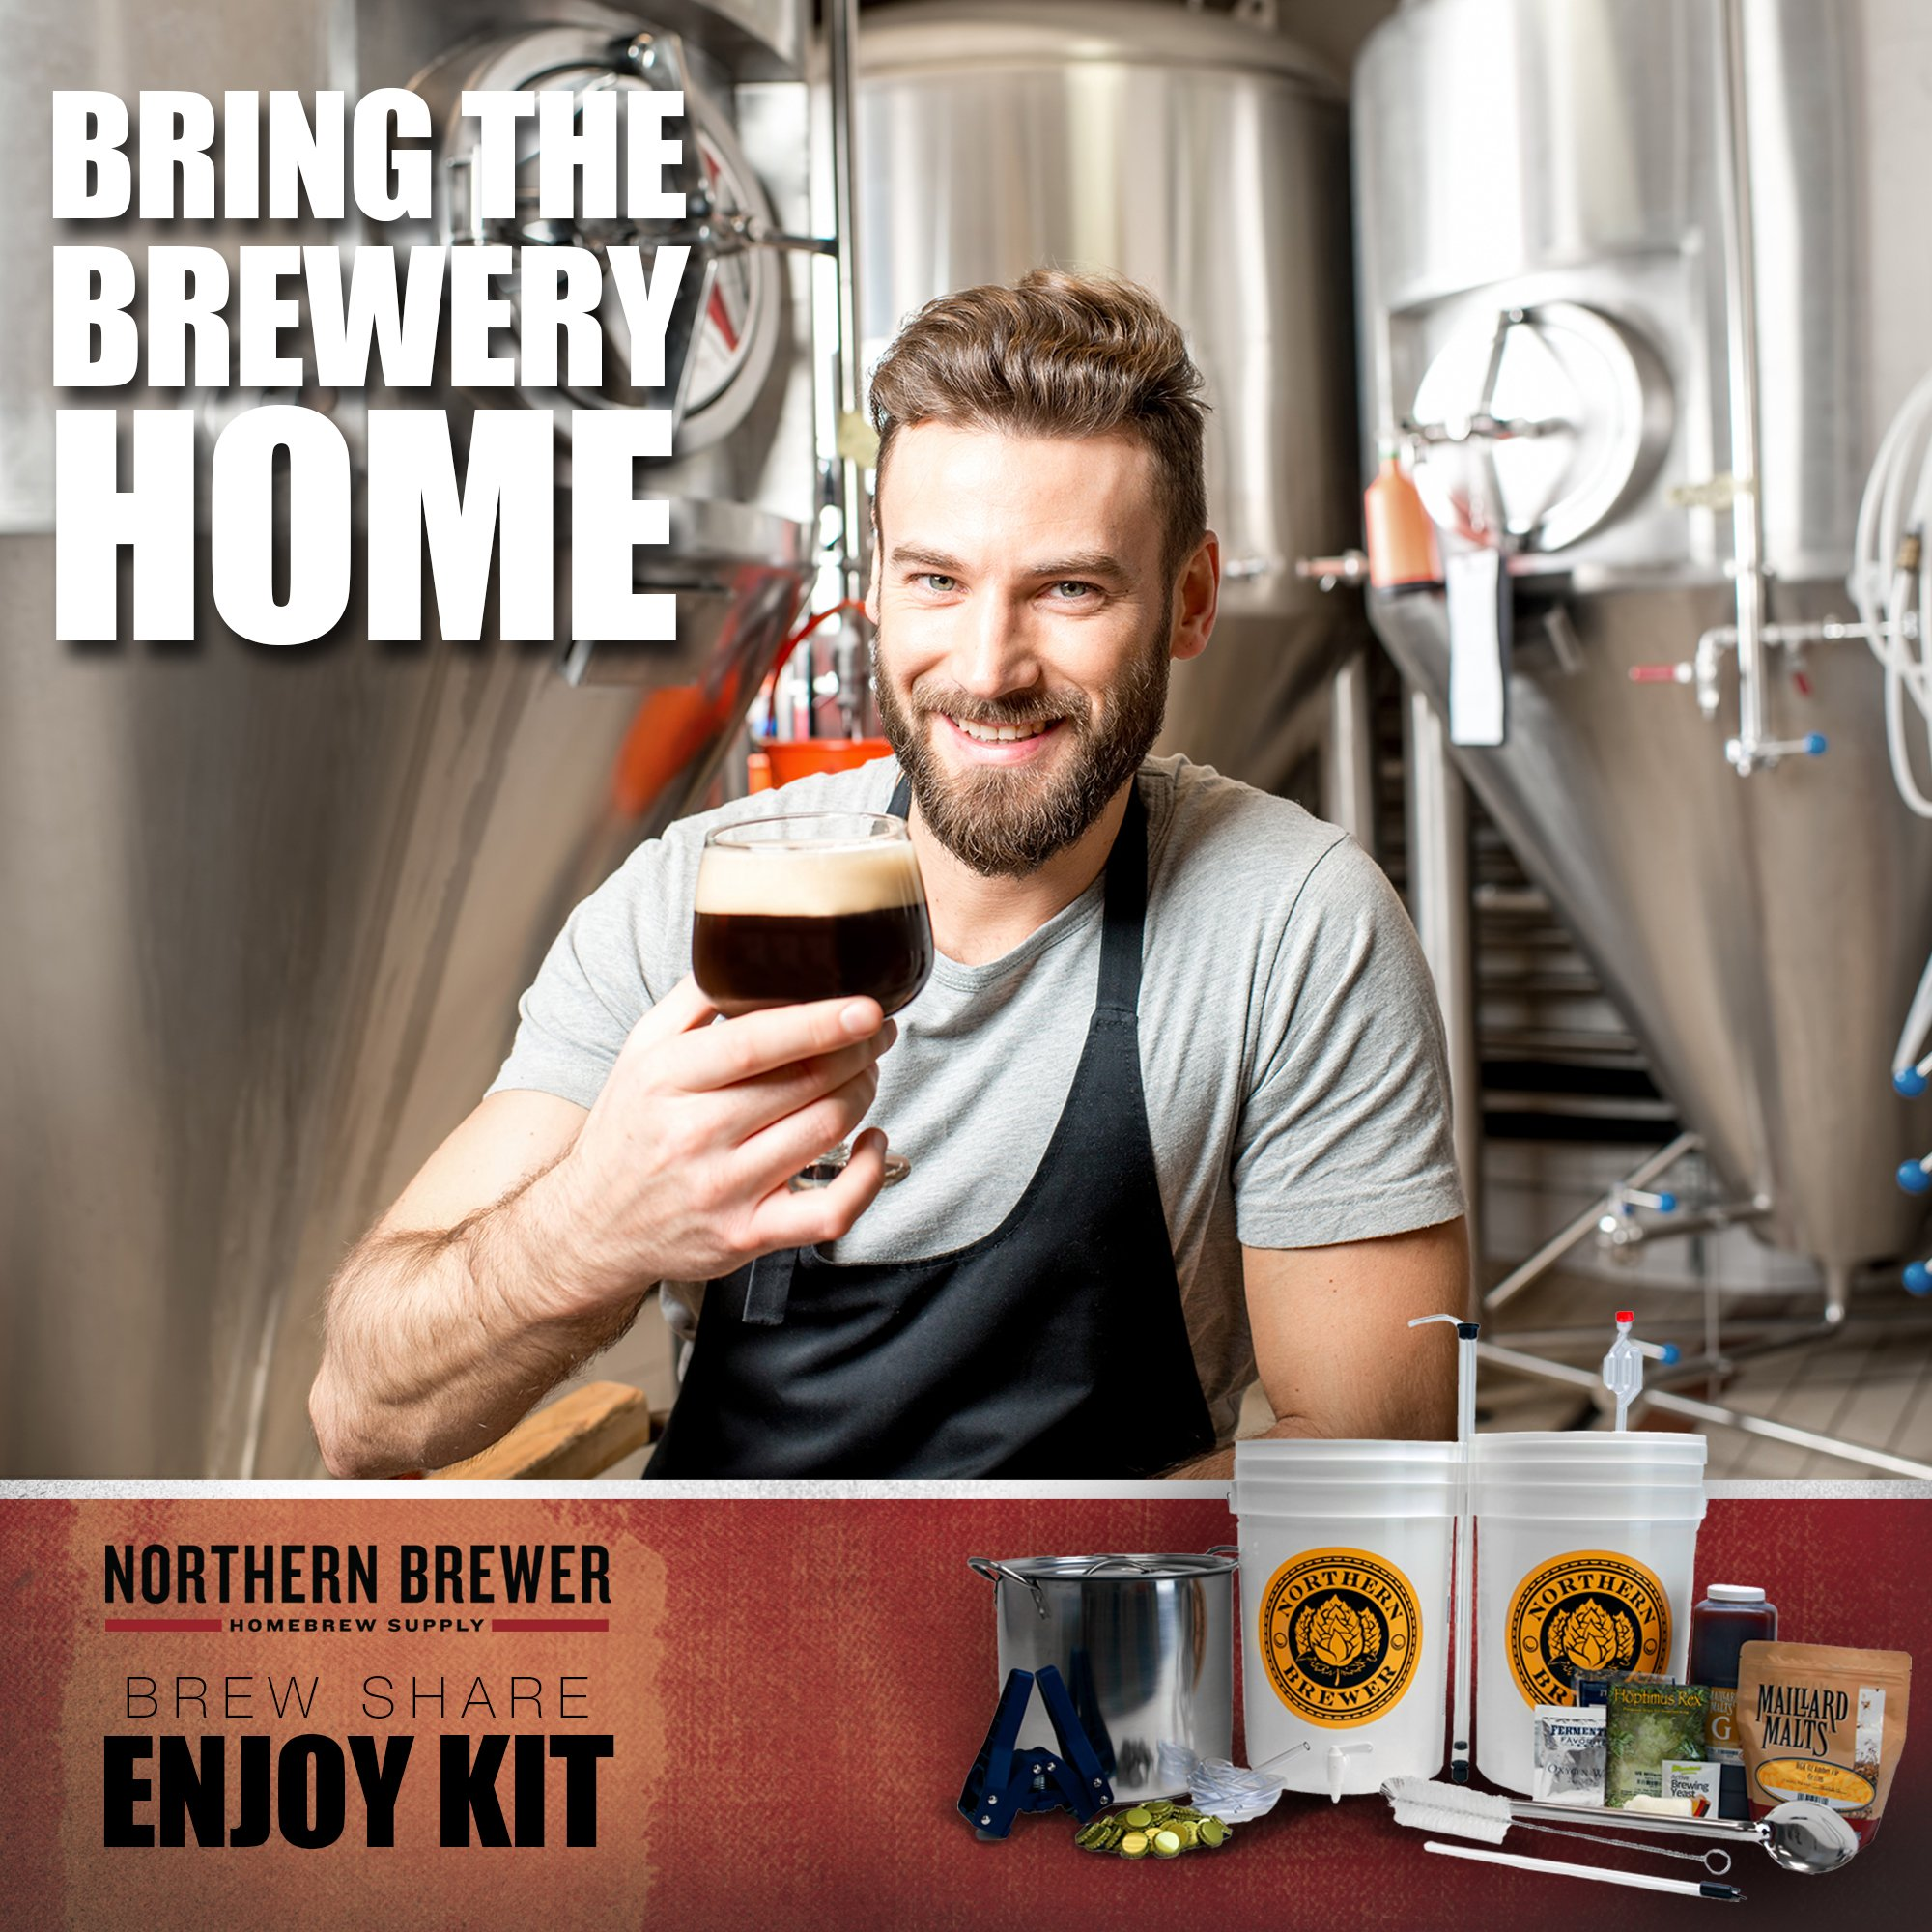 Northern Brewer - Brew. Share. Enjoy. Homebrew 5 Gallon Beer Brewing Starter Set Recipe Kit and Brew Kettle (Block Party Amber) by Northern Brewer (Image #2)